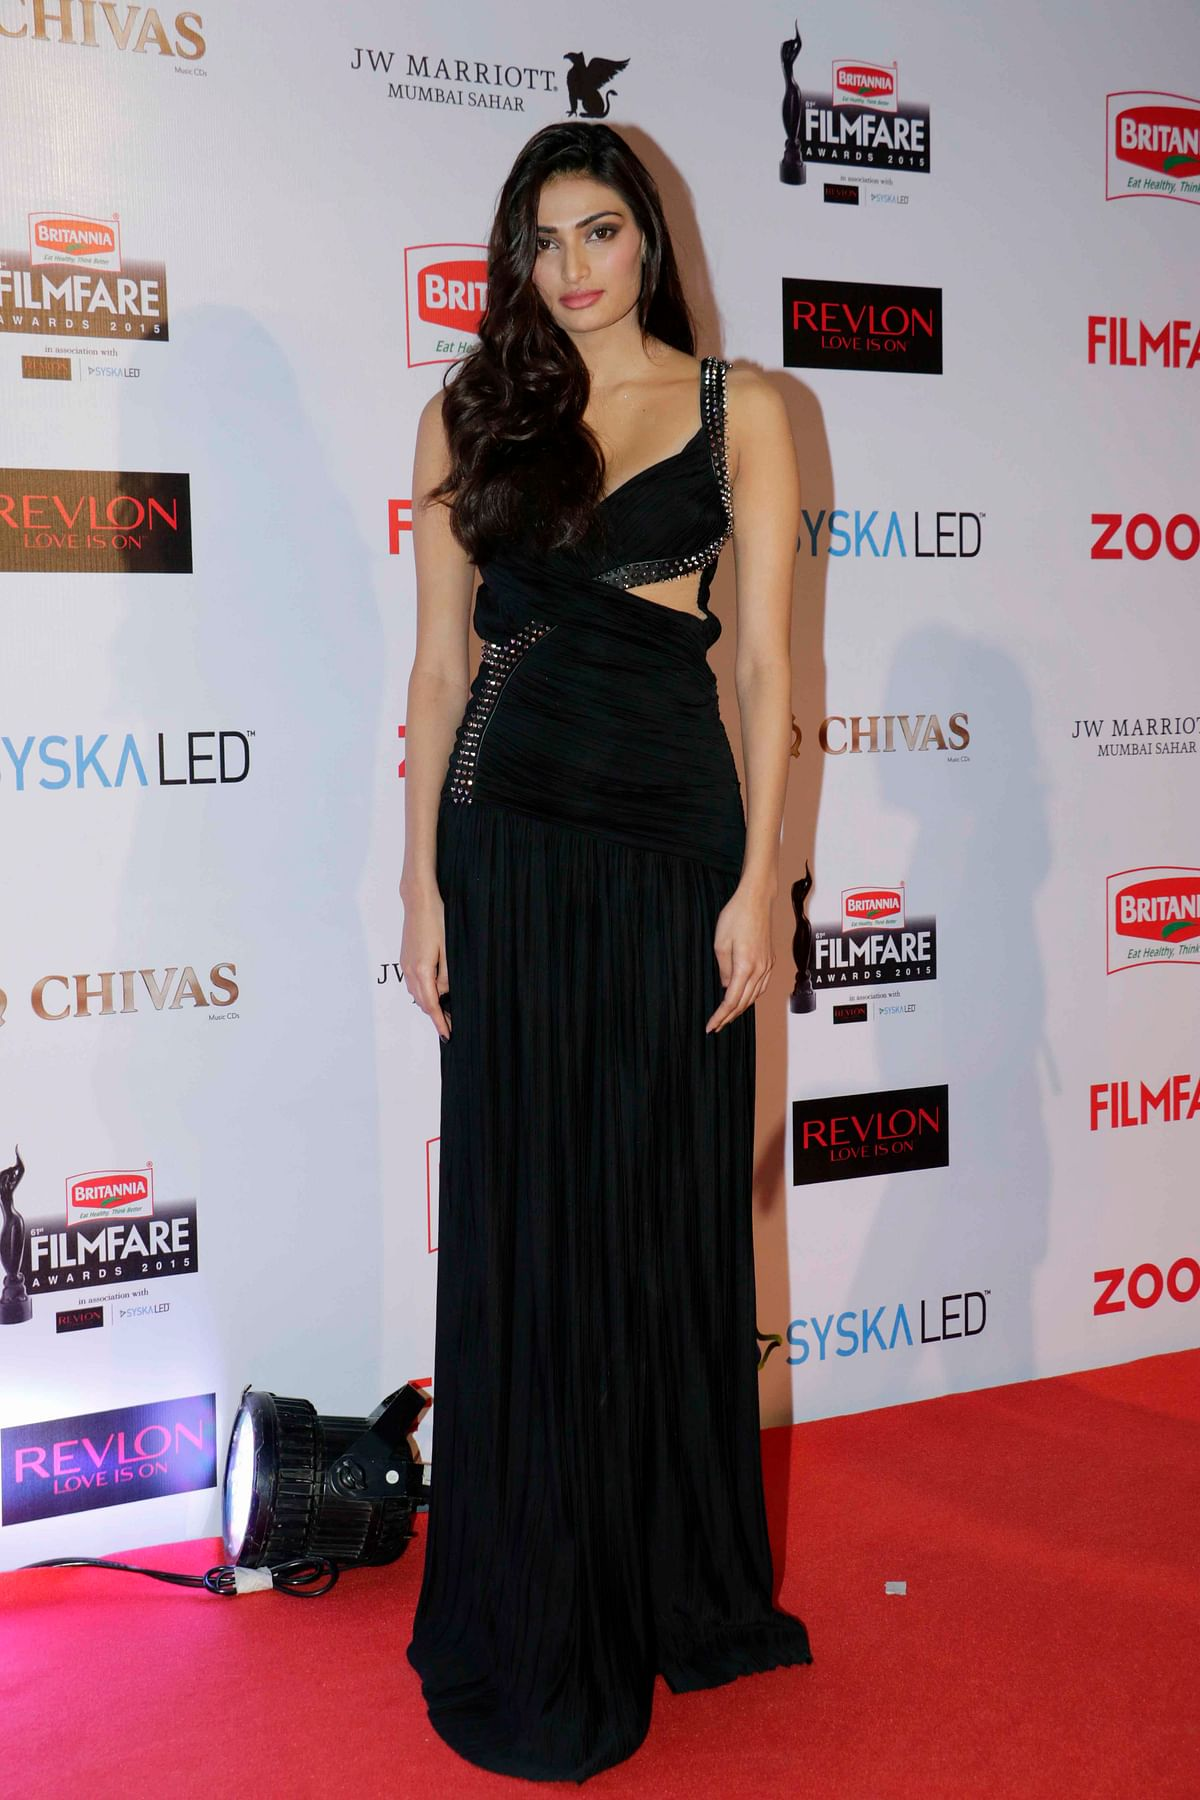 Athiya Shetty goes wrong even with the basic black (Photo: Yogen Shah)